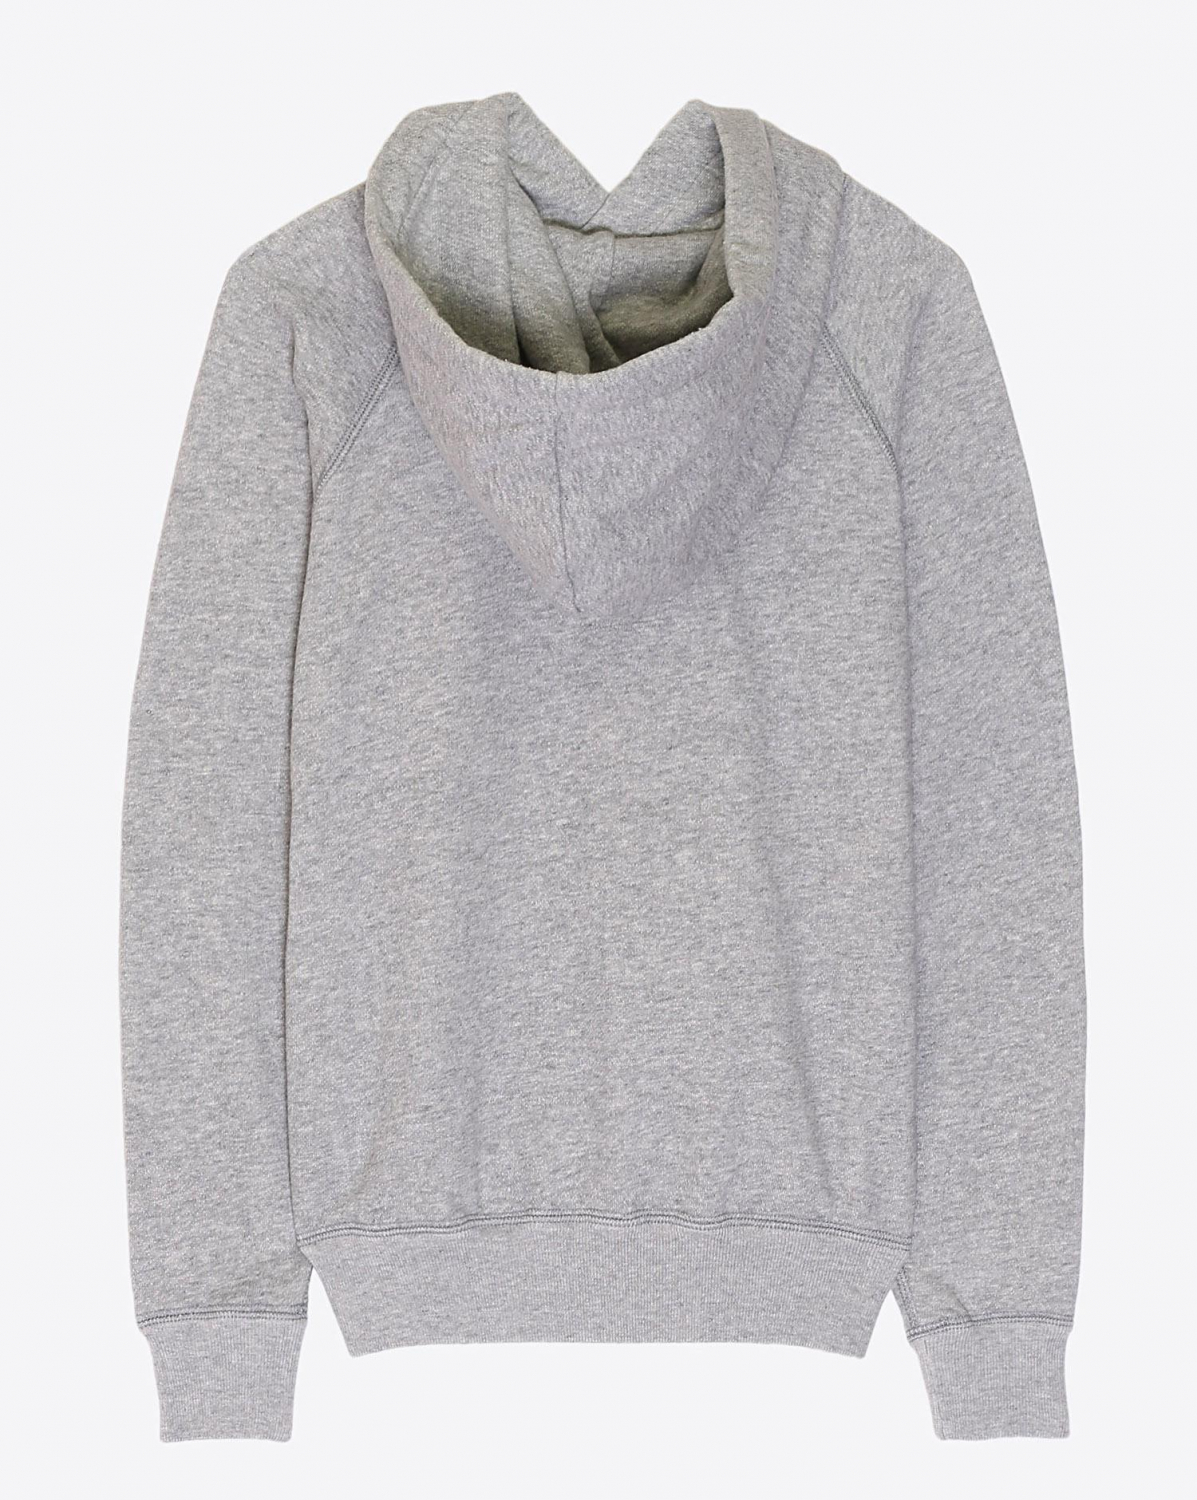 Isabel Marant Etoile Sweat Shirt MALIBU - GREY